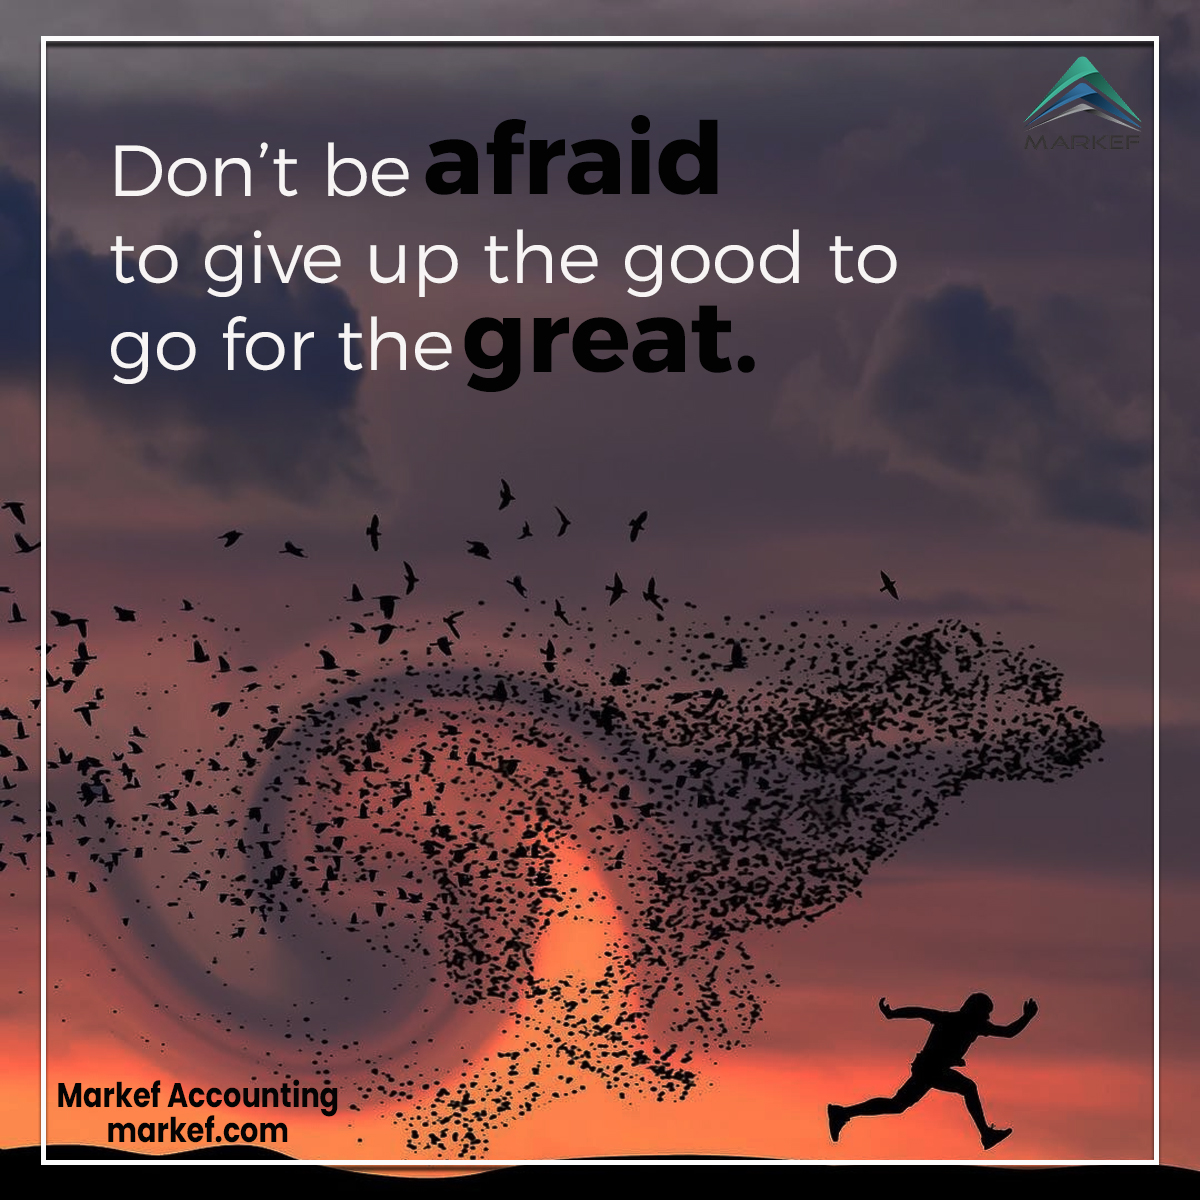 """""""Don't be afraid to give up the good to go for the great.""""  #Markef #MarkefAccounting #success #afraid #great #Important #Motivation #Motivational #SuccessQuote #Plan #Silence #Pursue #True #Dreams #UAE #Dubai https://t.co/HAE4zVEBqf"""